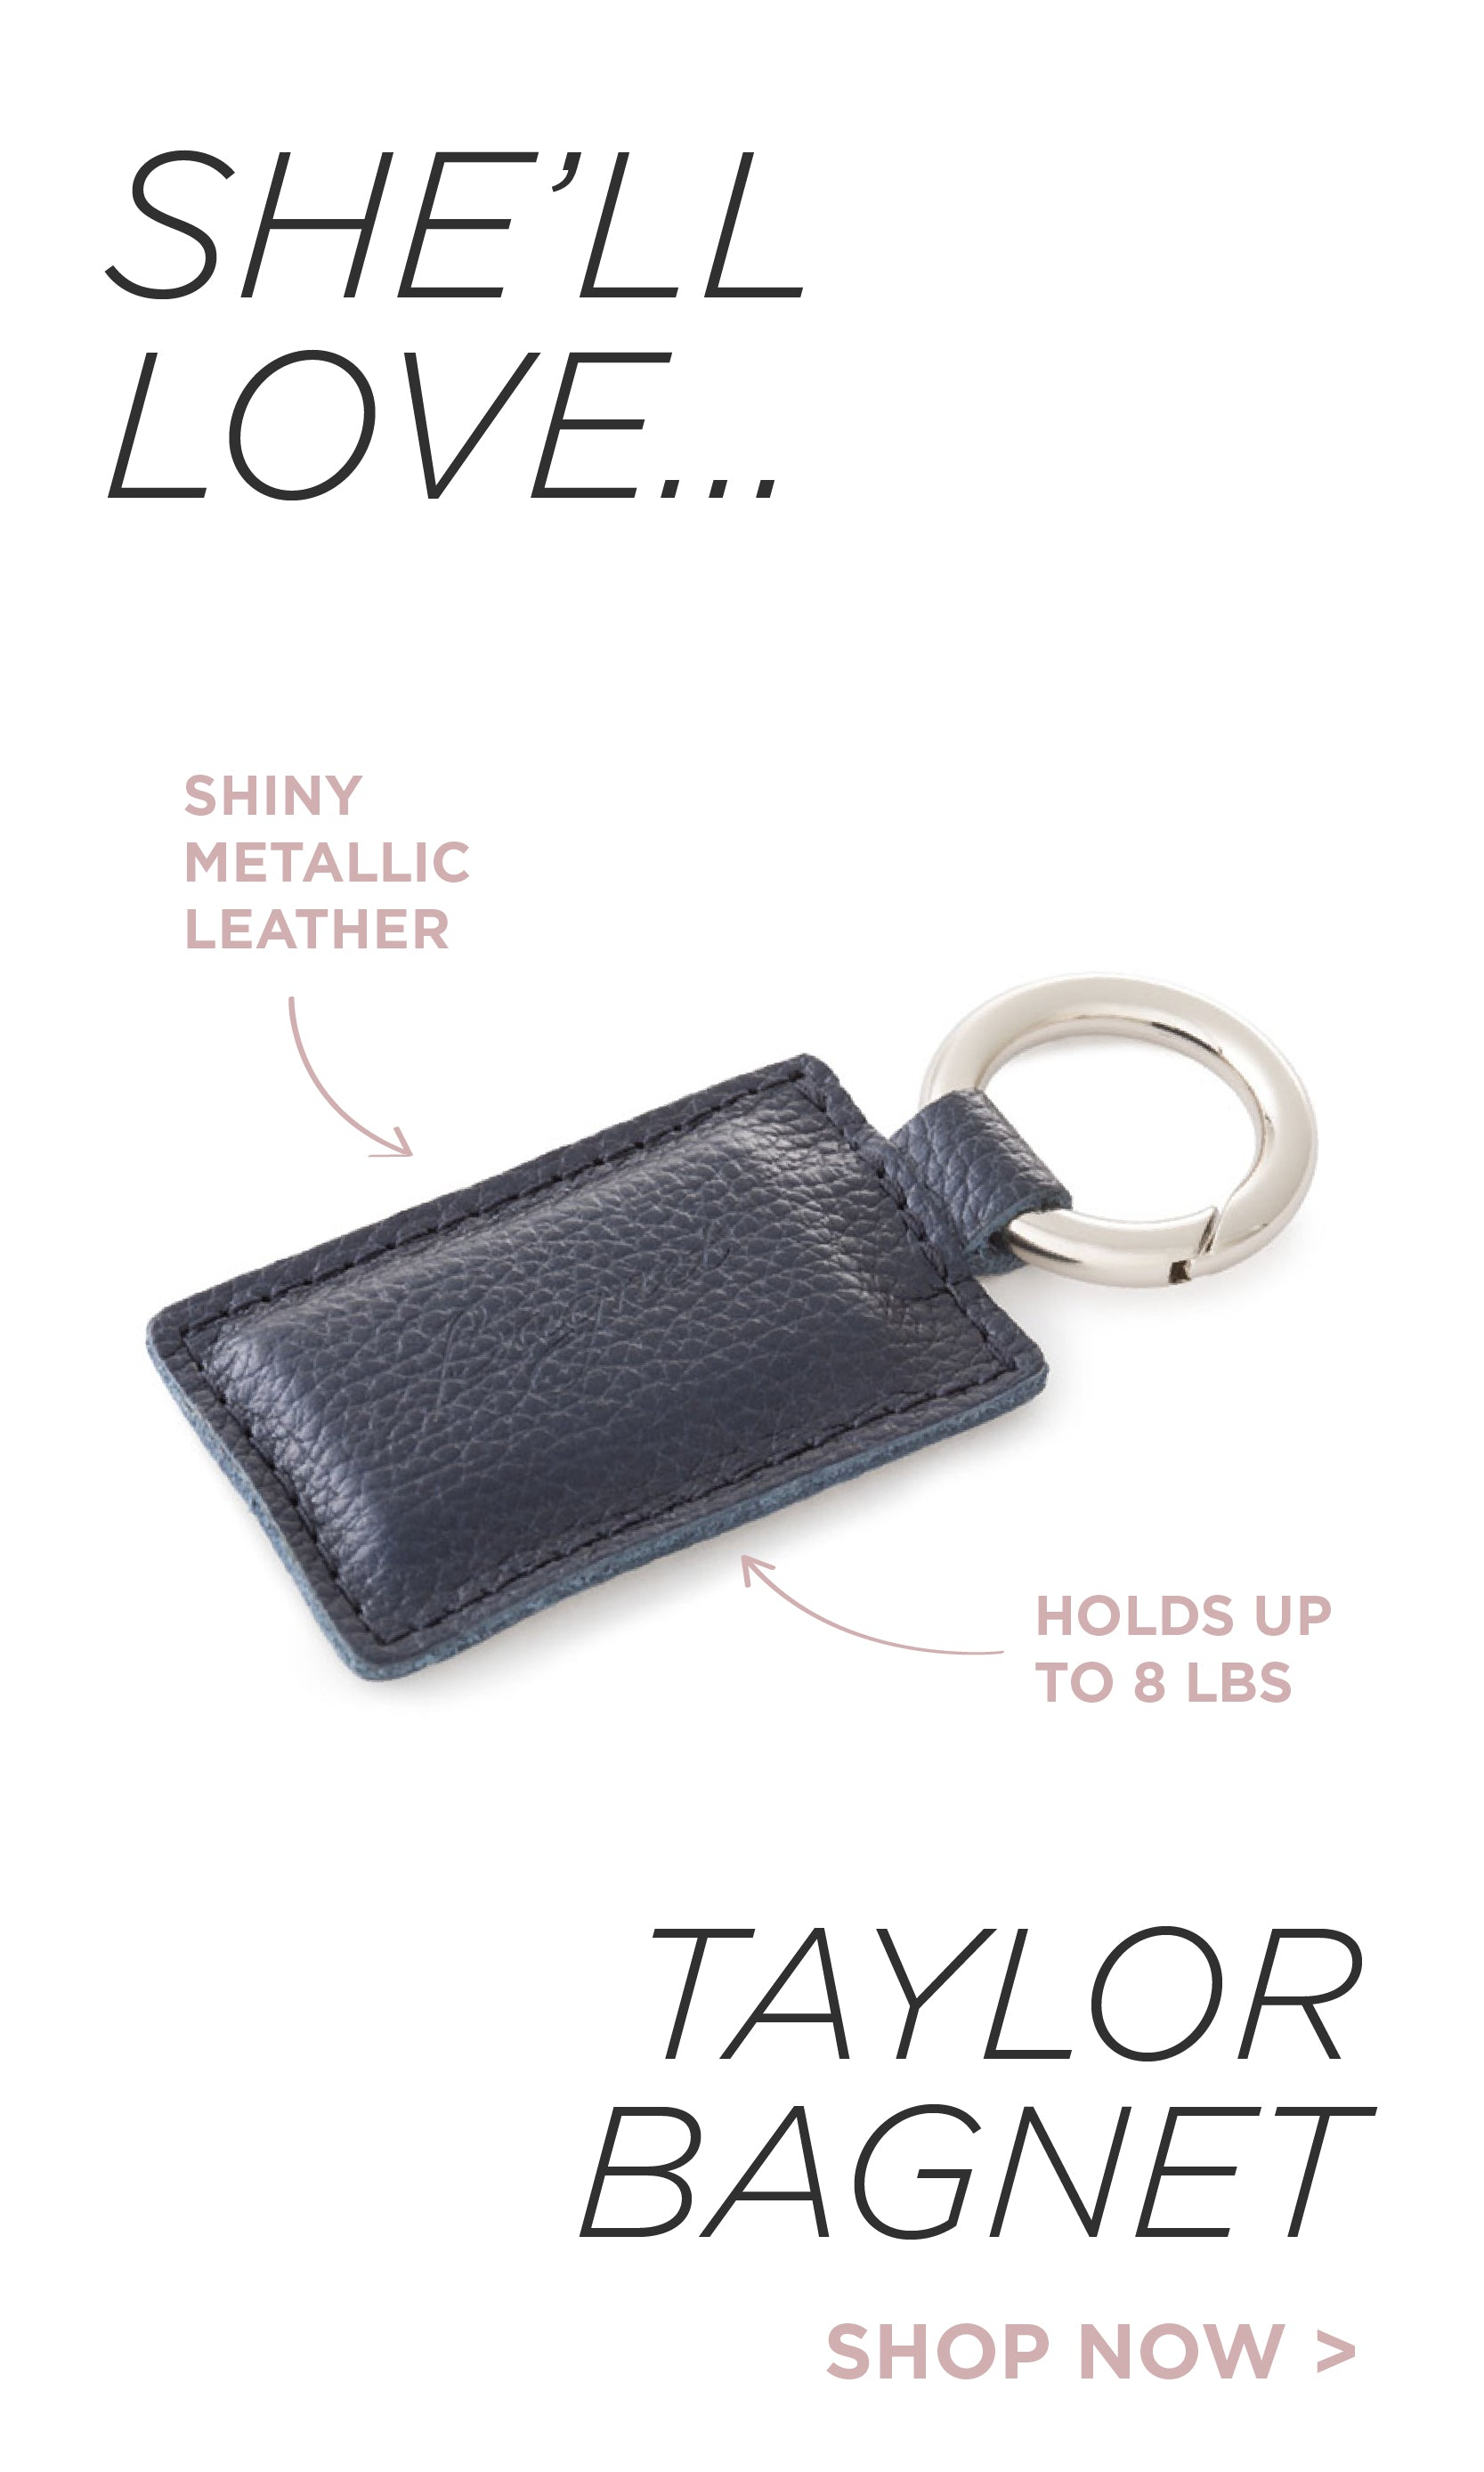 She'll Love the Taylor Bagnet. Made of shiny metallic leather, it holds handbags up to 8 pounds.